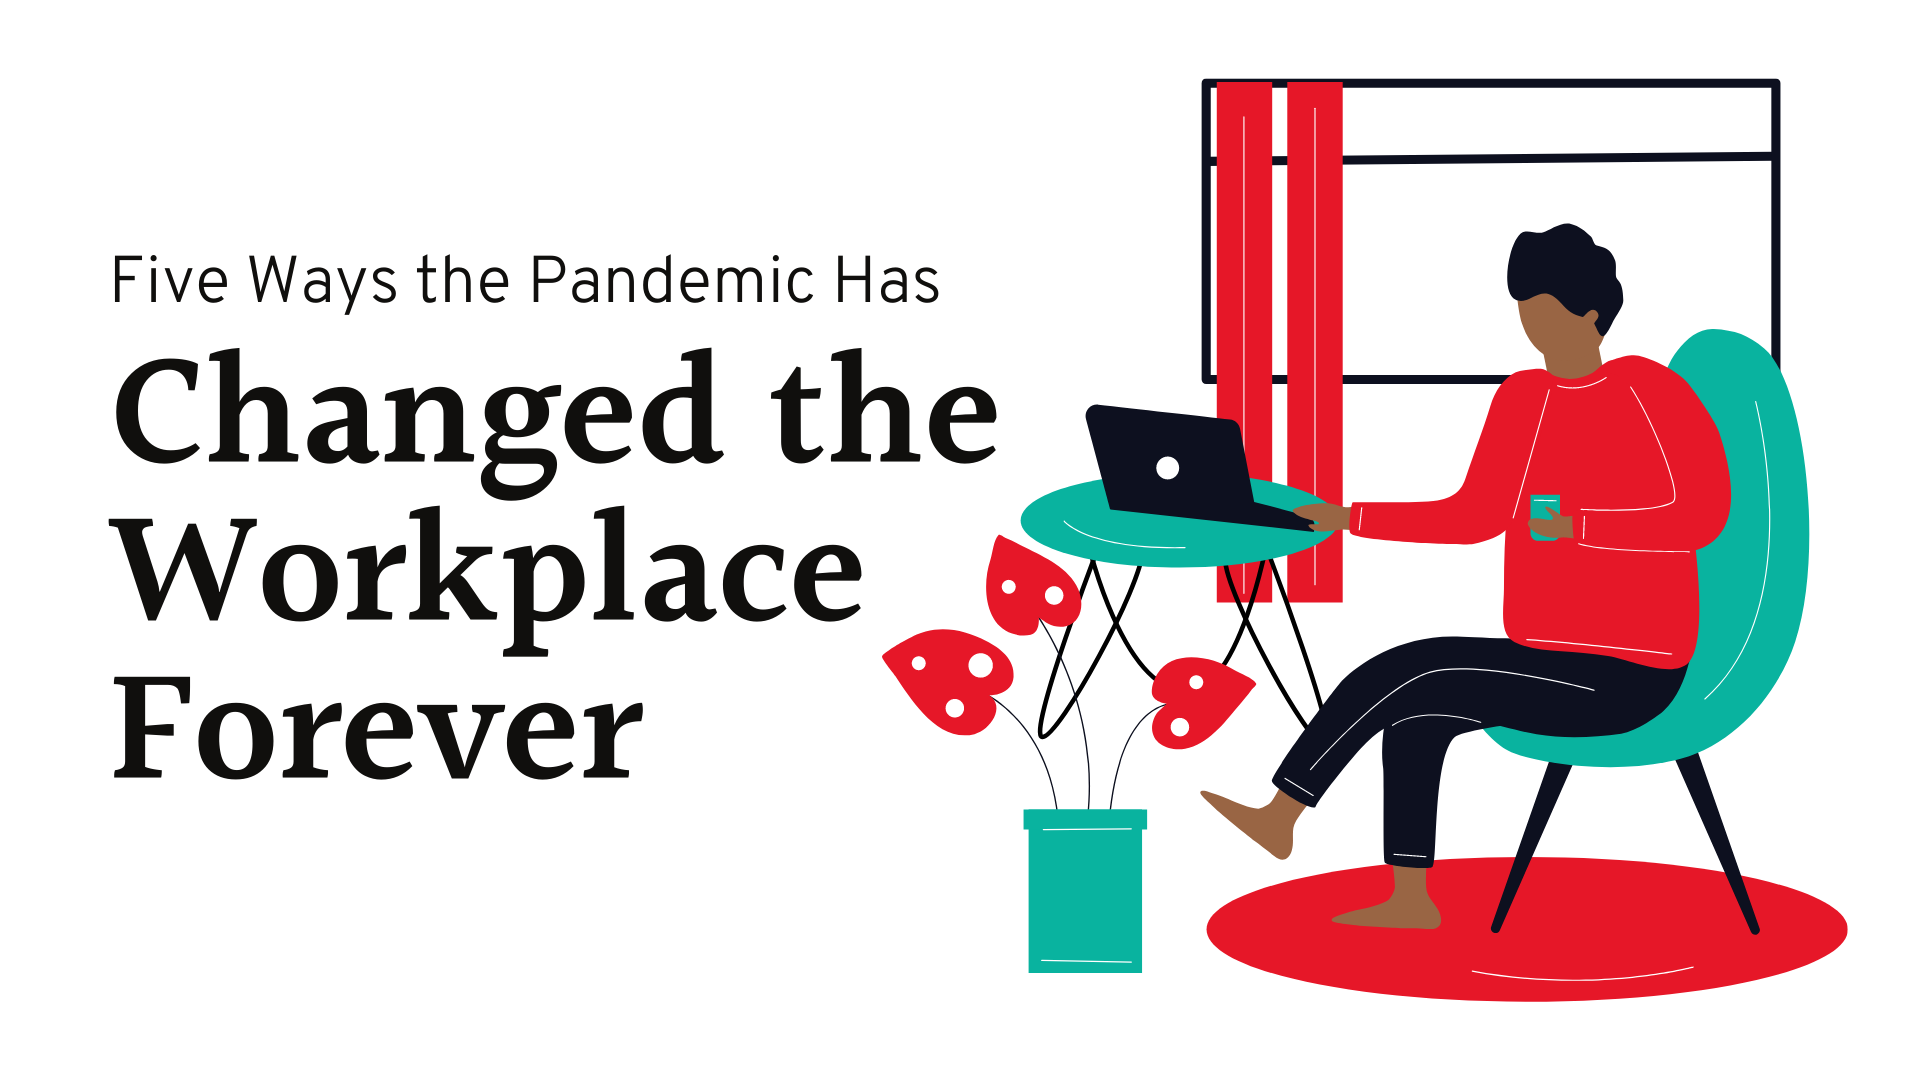 5 Ways the Pandemic Has Changed the Workplace Forever